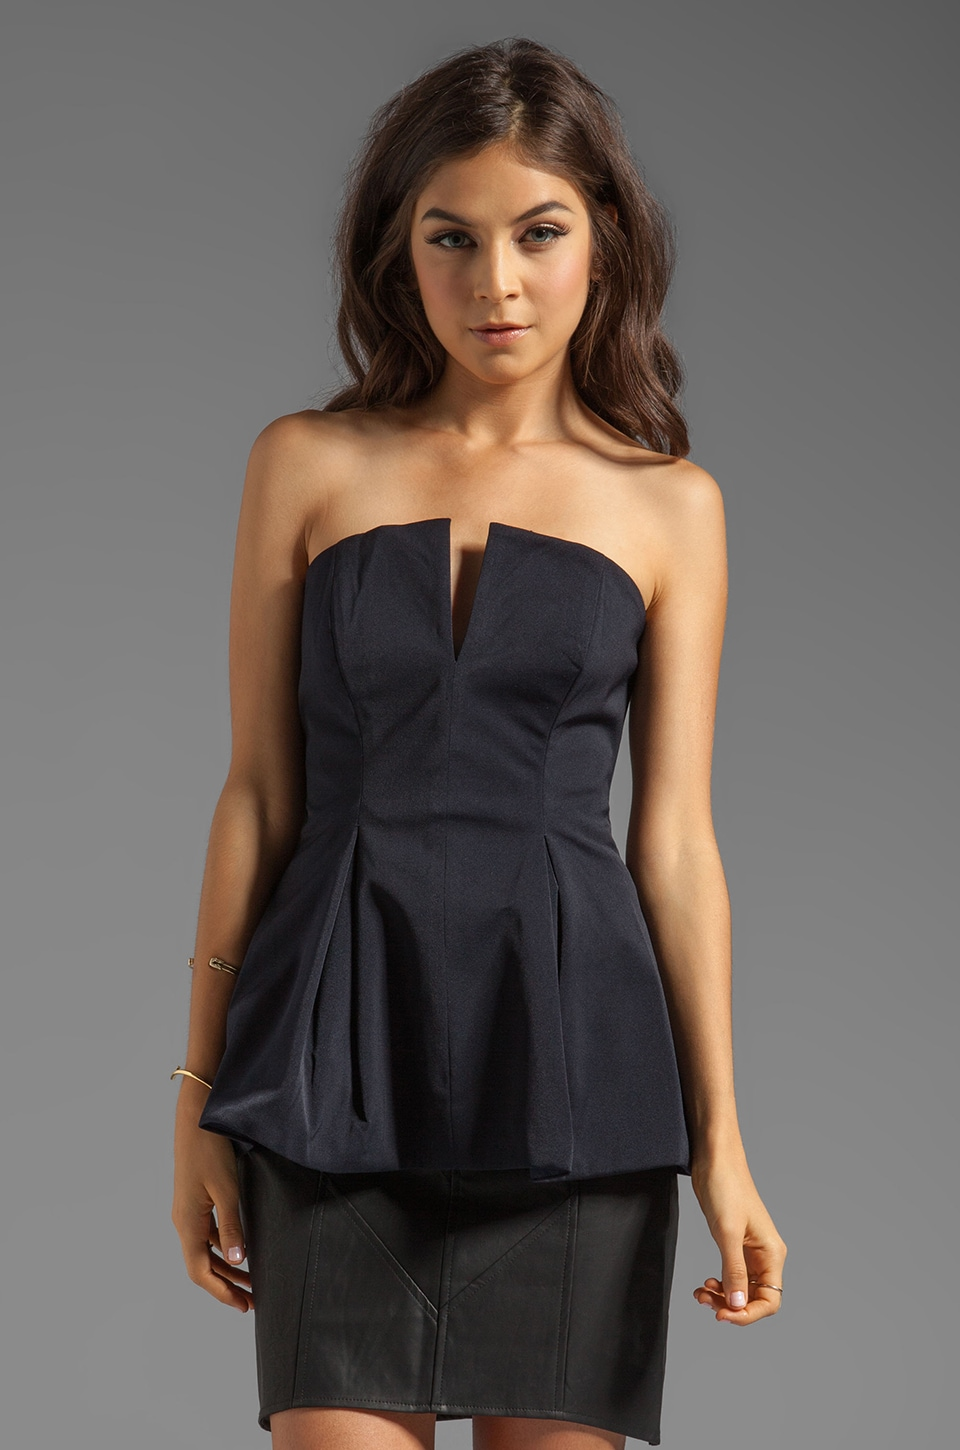 C/MEO Reflection Bustier Top in Navy Blue